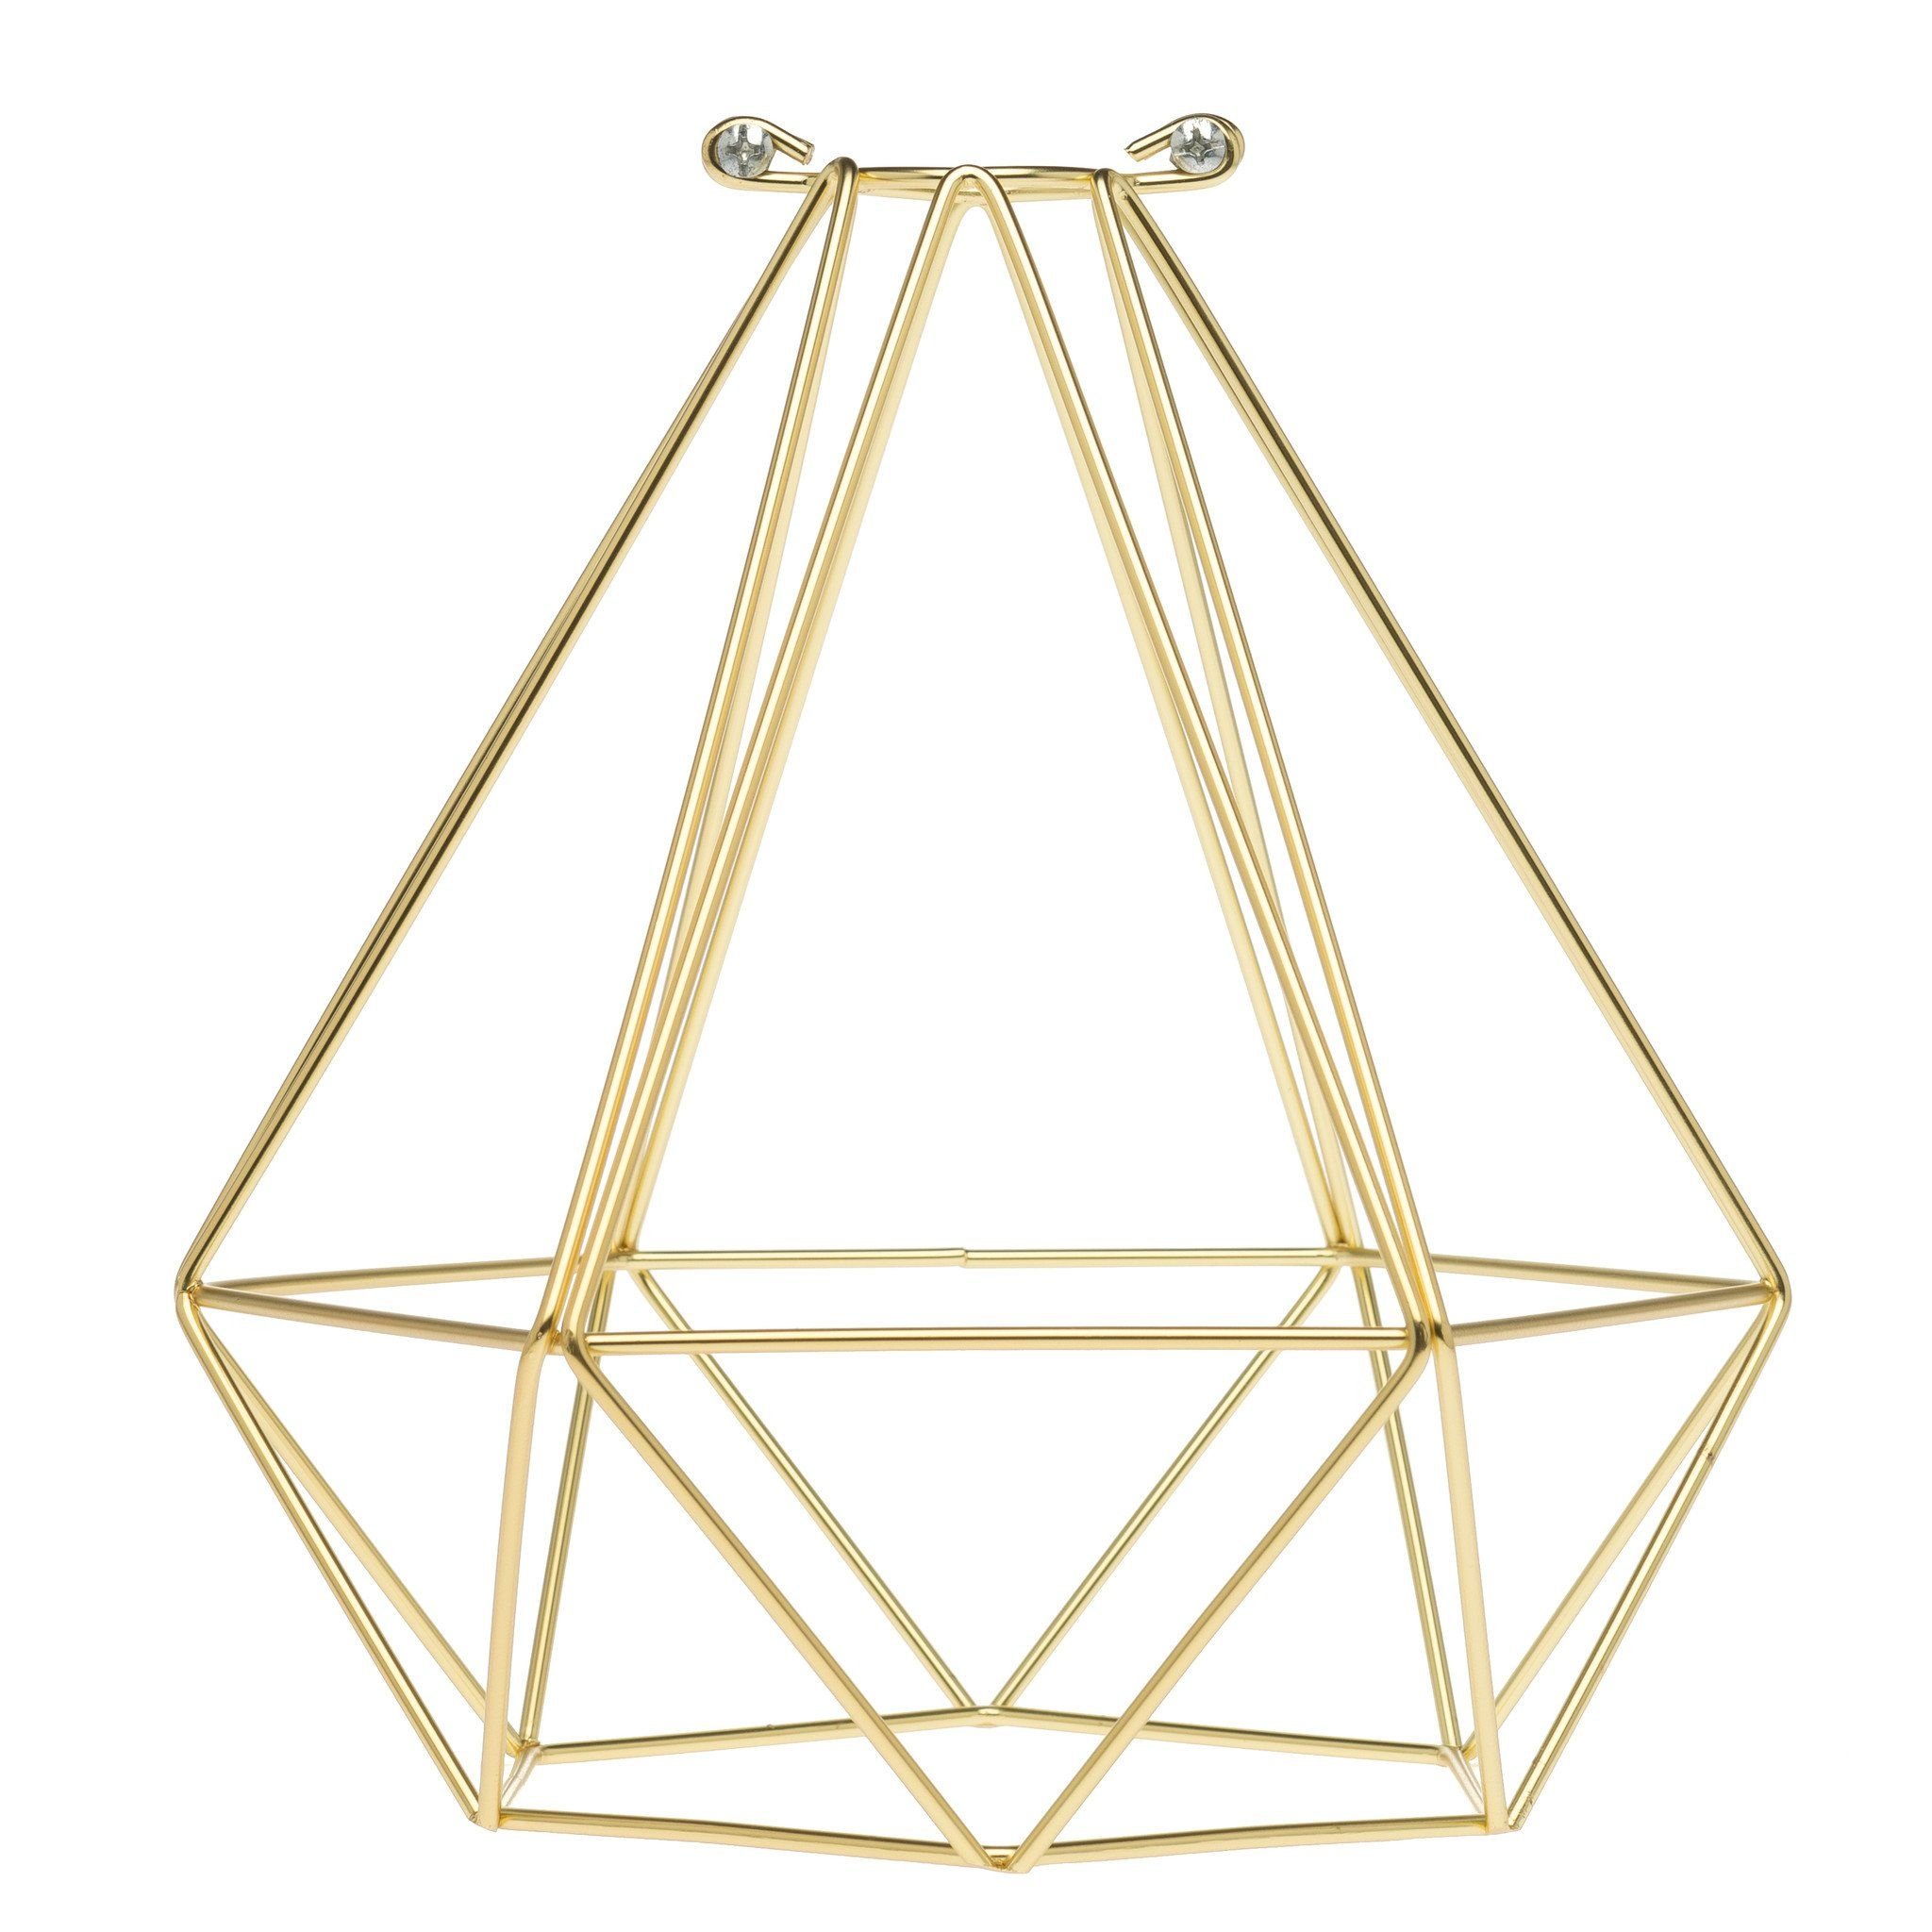 Pin By Ali C On Belladonna Pinterest Bulbs Light Bulb And Lights Wiring Sockets Together With How To Wire A Ceiling The Cool Diamond Style Shape Looks Great Is Easy Install Medium Base